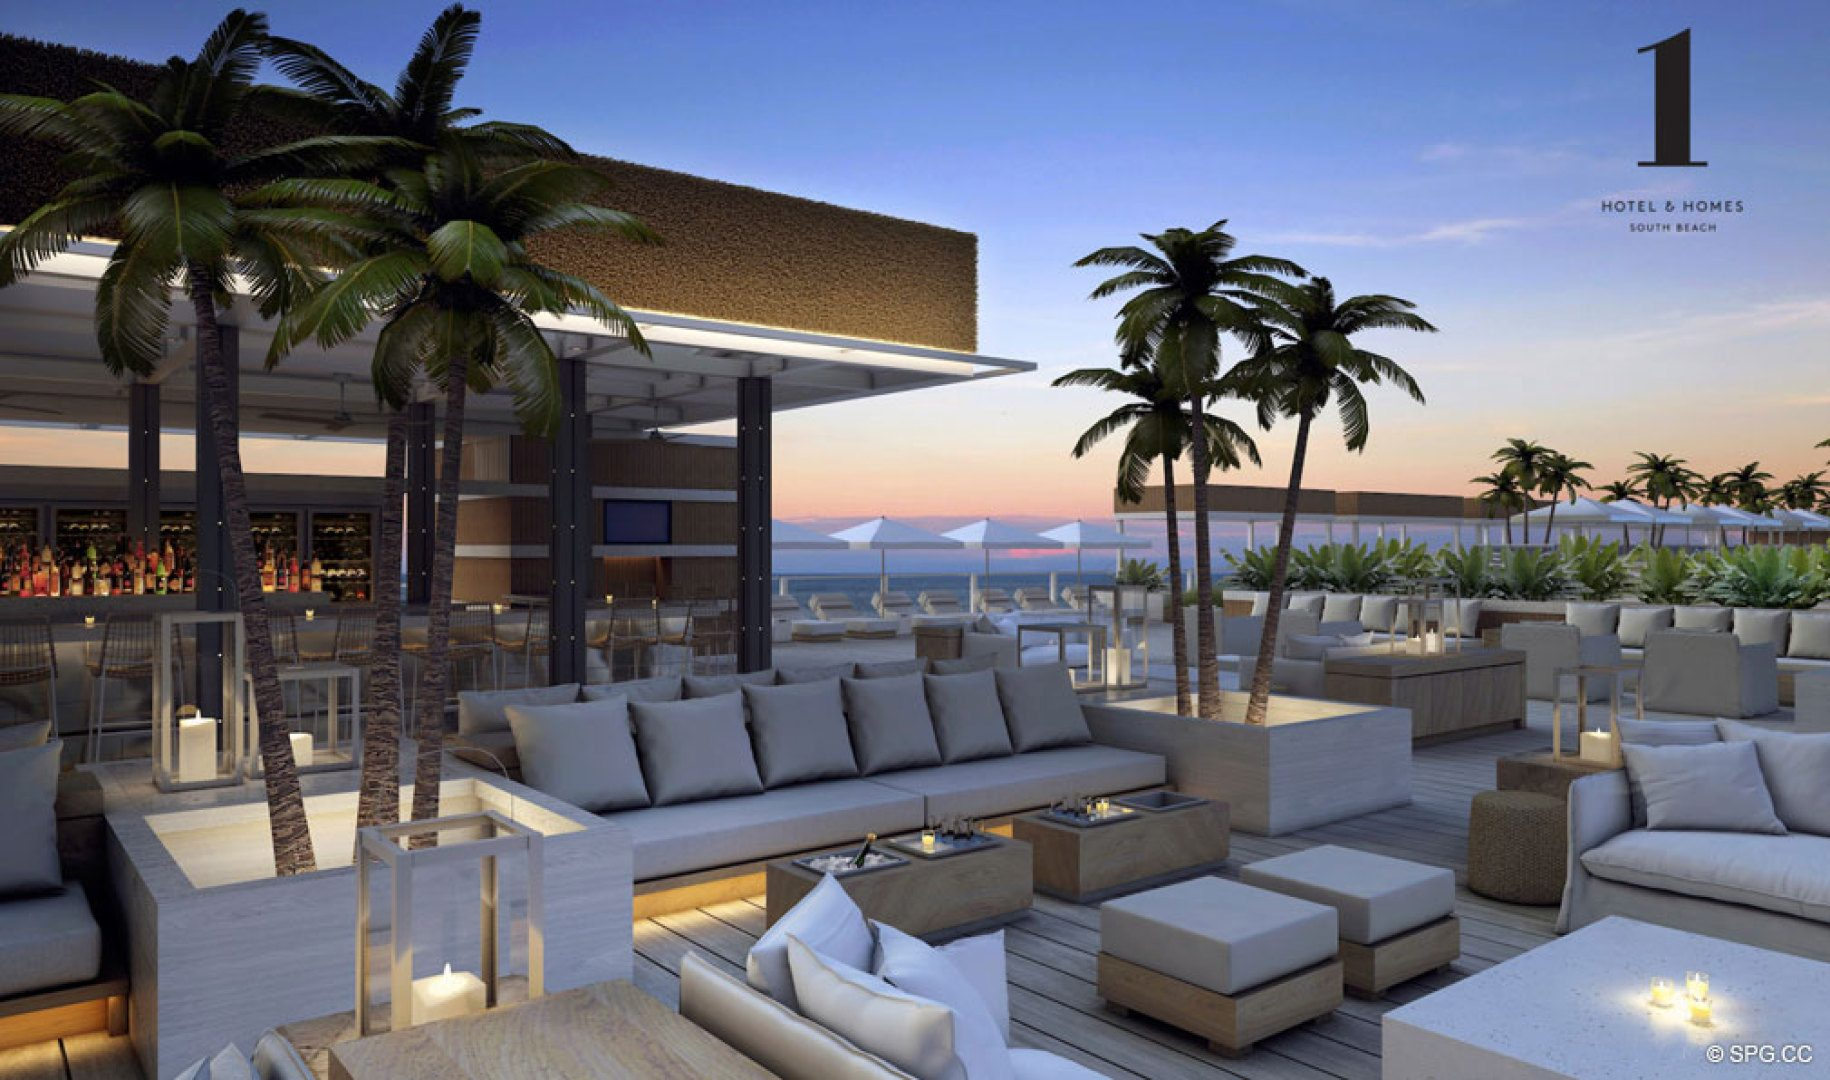 Beachfront Lounge at 1 Hotel & Homes South Beach, Luxury Oceanfront Condominiums Located at 2399 Collins Ave, Miami Beach, FL 33139